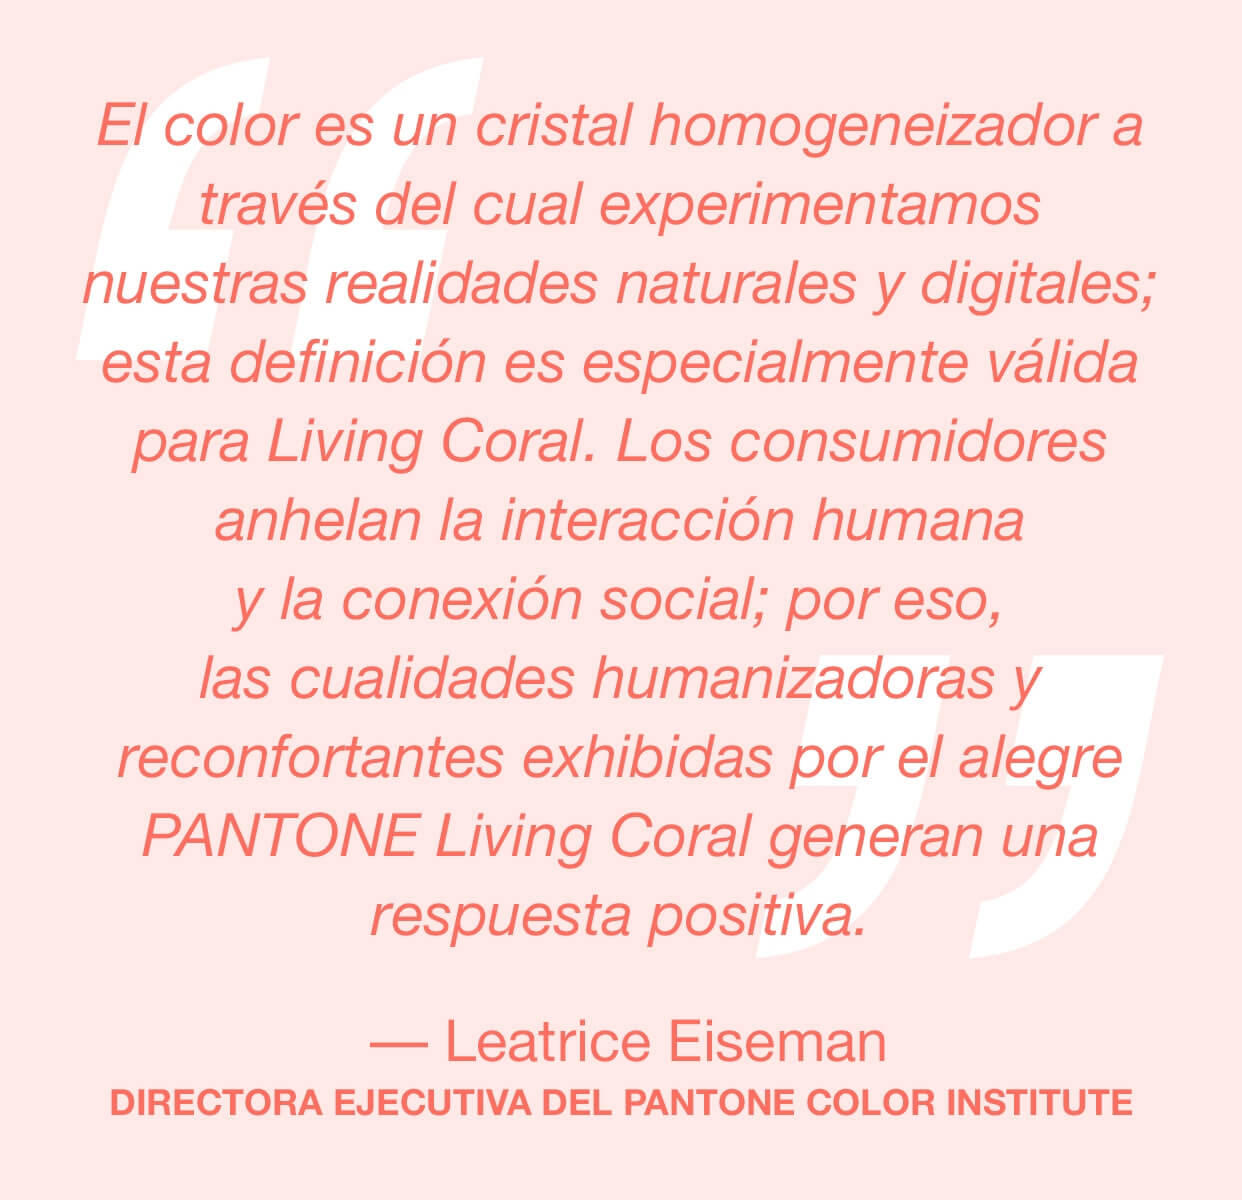 pantone-color-of-the-year-2019-living-coral-lee-eiseman-quote-mobile-es